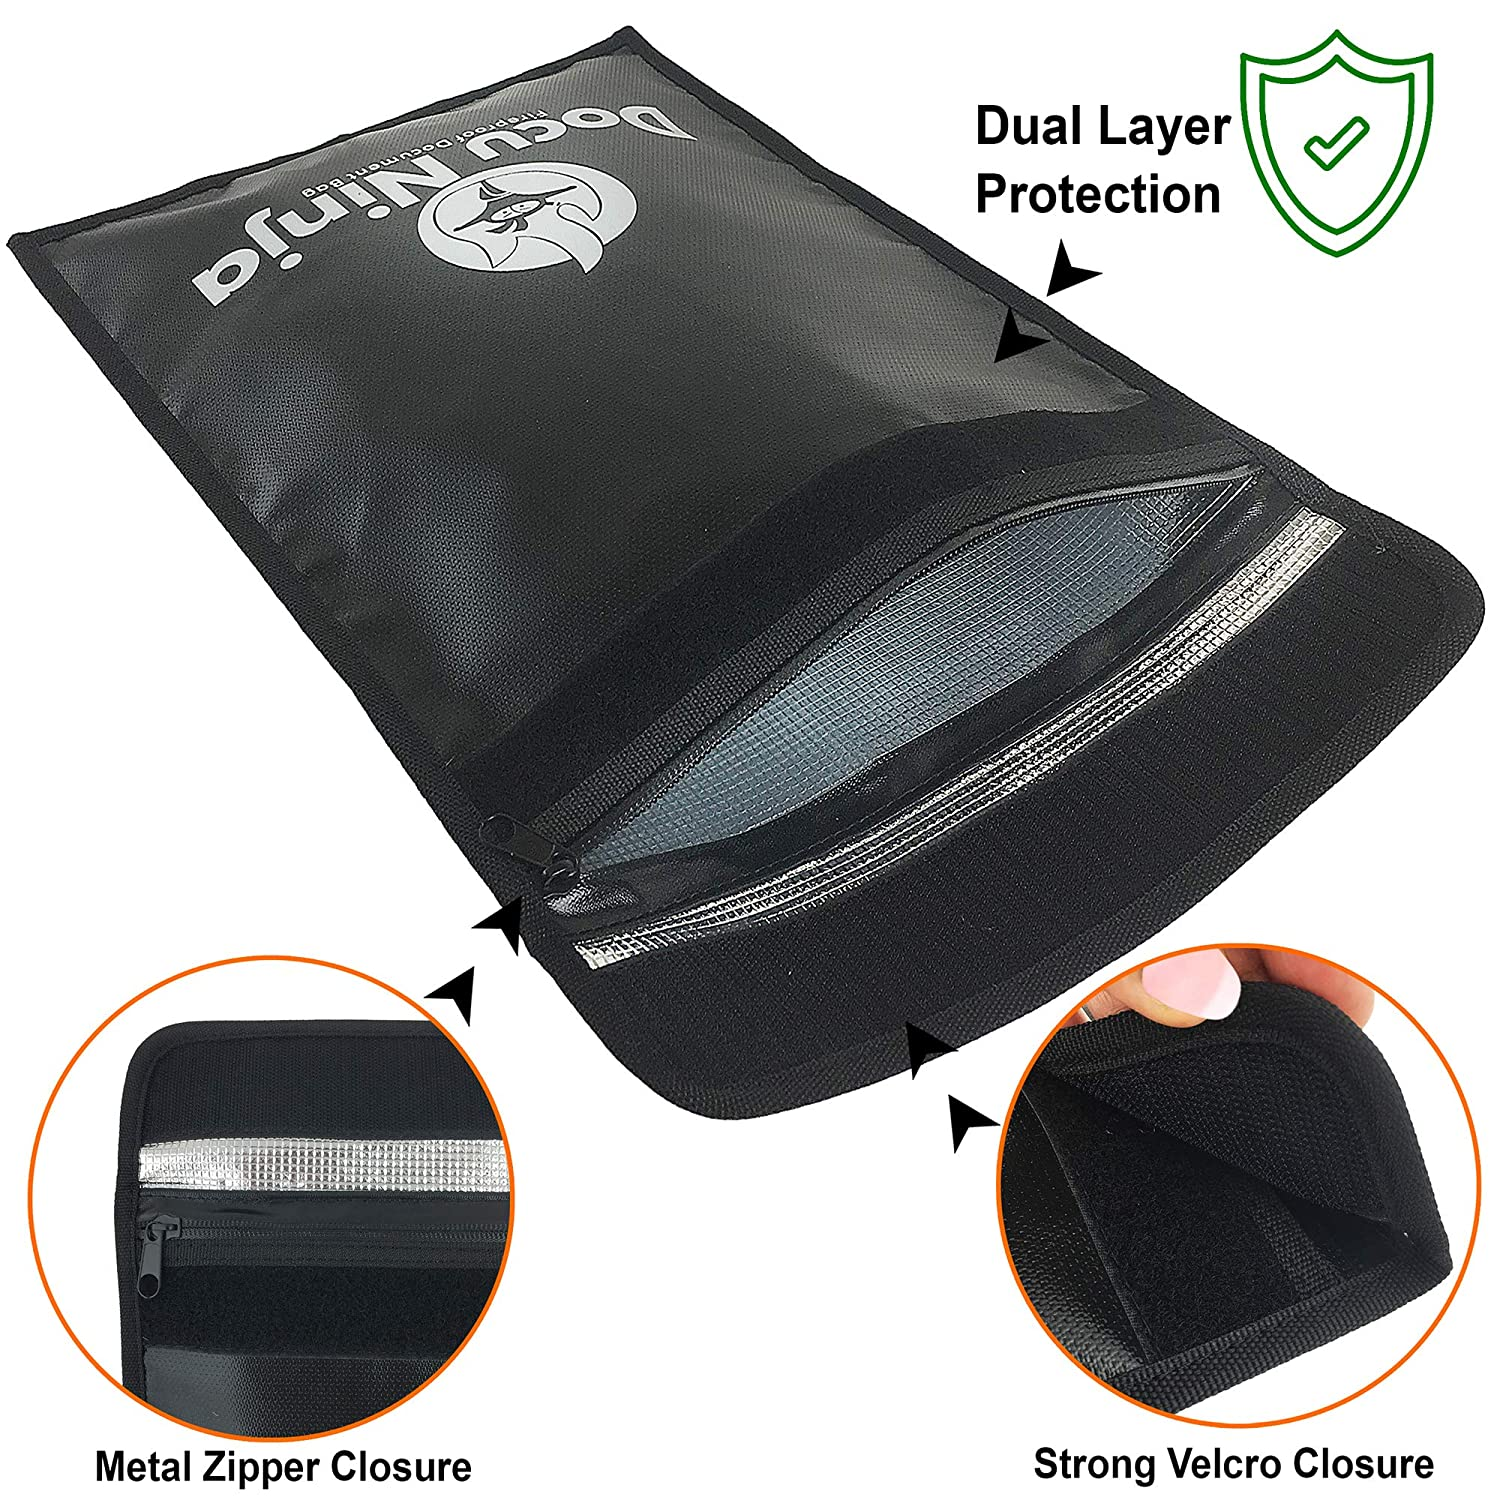 Fireproof Document Bags Legal Size|Fireproof Safety Boxes for Home DOCU NINJA Waterproof Fireproof Document Bags Small Fireproof Document Bags Non-Itchy Fire Proof Water Proof Safe Document Holder